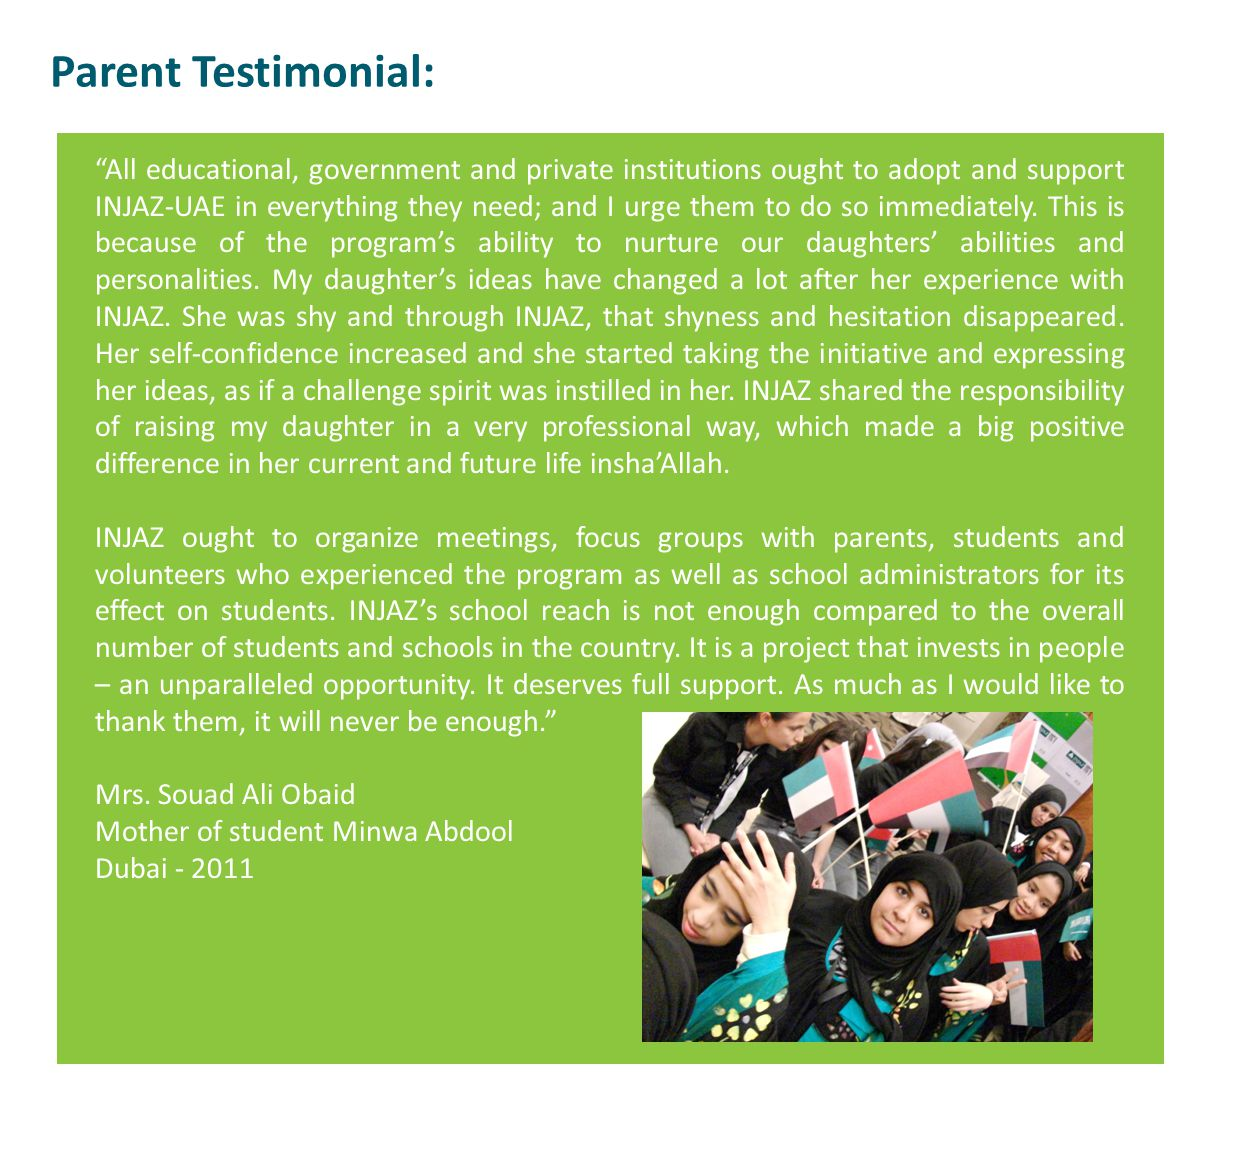 Parent Testimonial: All educational, government and private institutions ought to adopt and support INJAZ-UAE in everything they need; and I urge them to do so immediately.